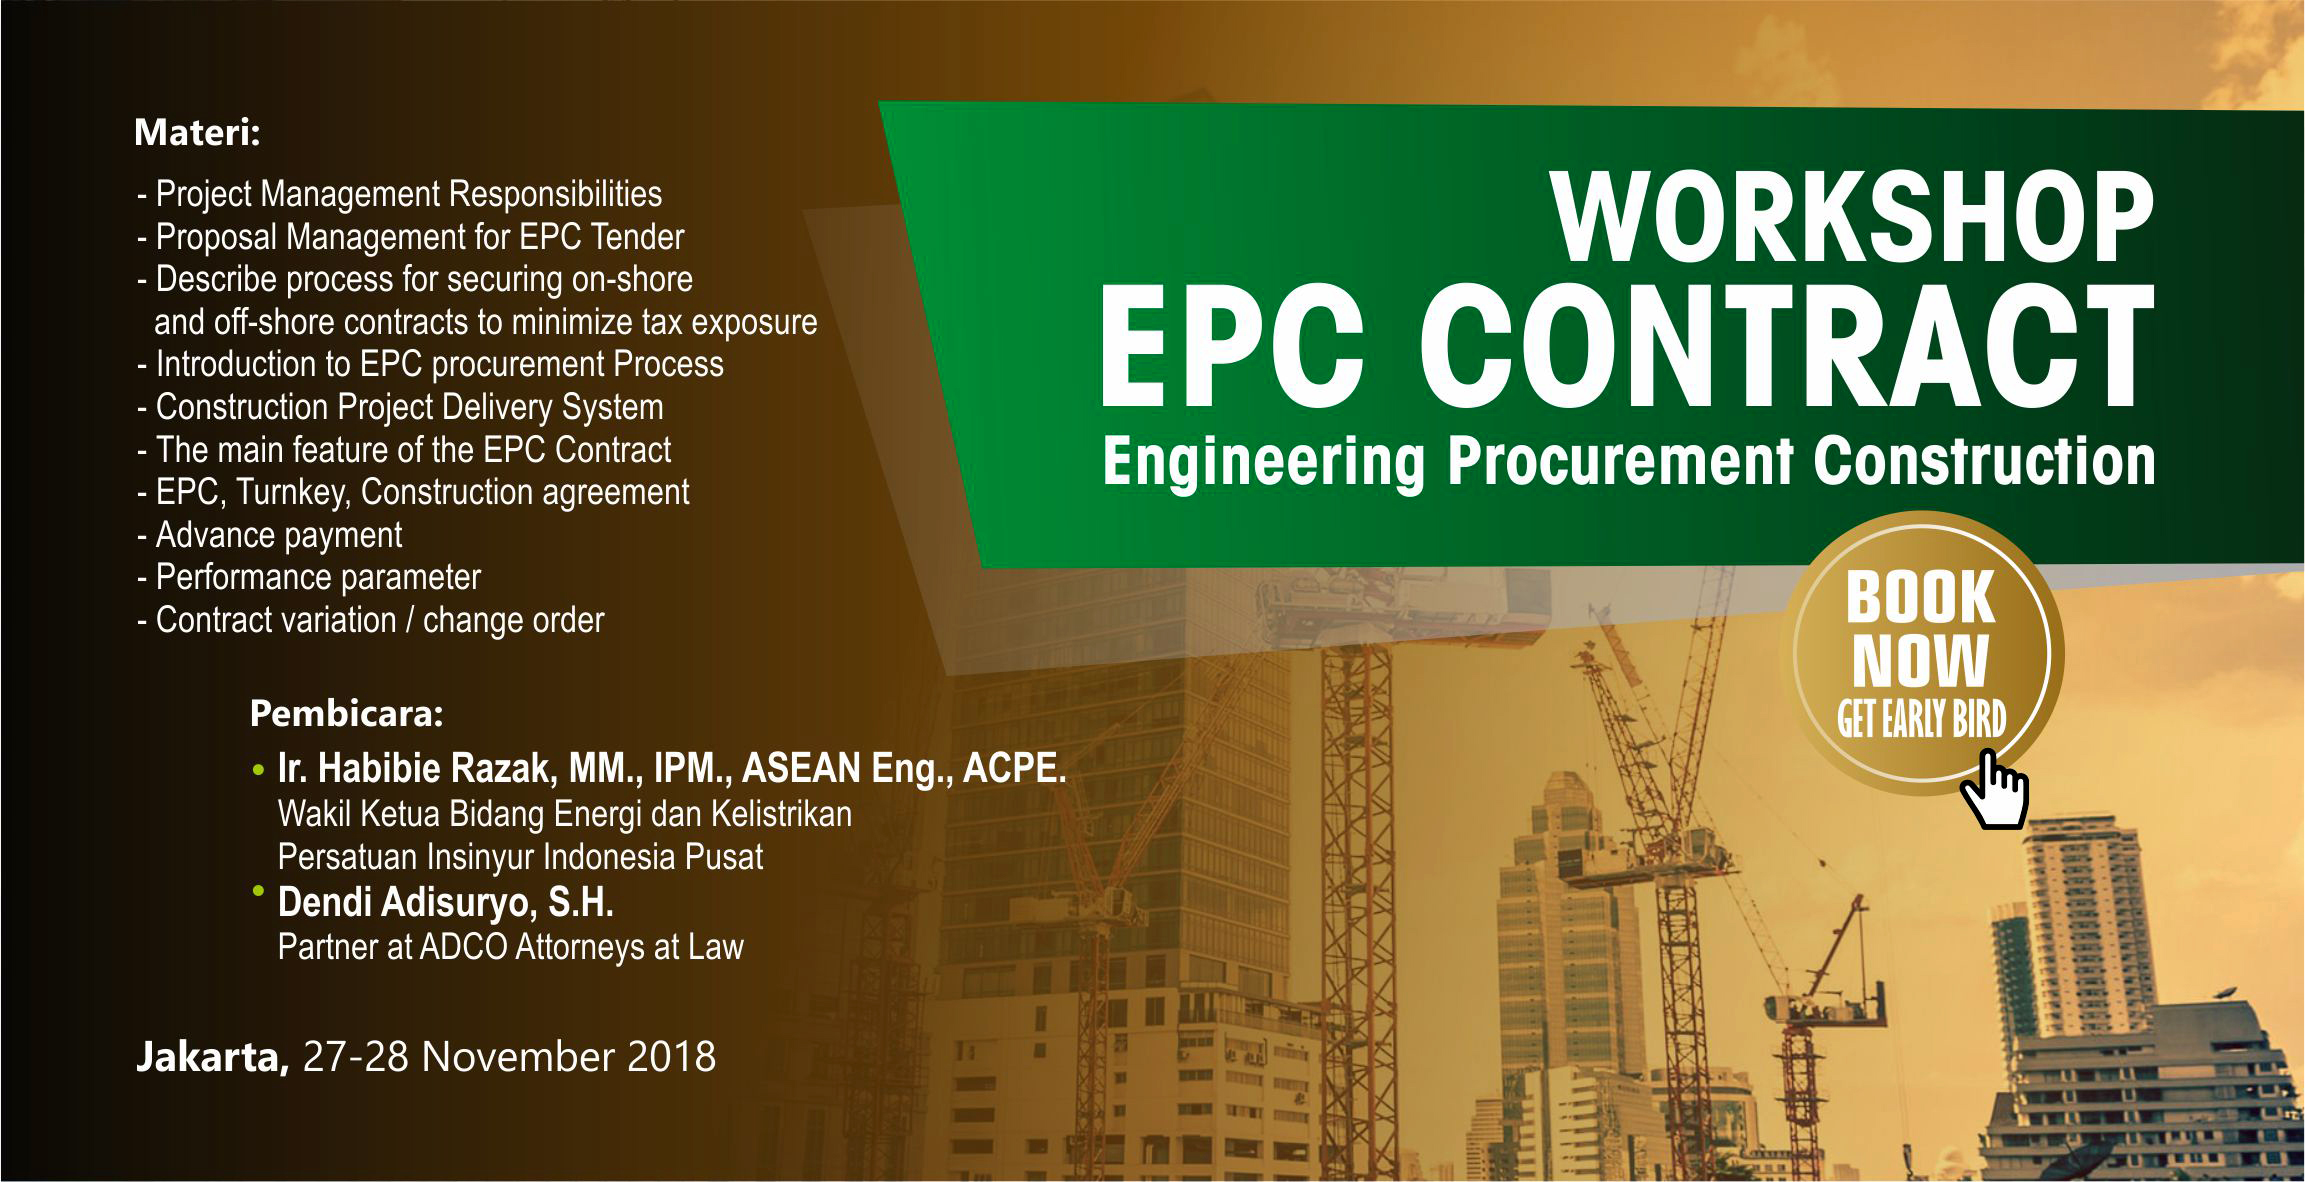 Engineering, Procurement and Construction (EPC) Contract Management